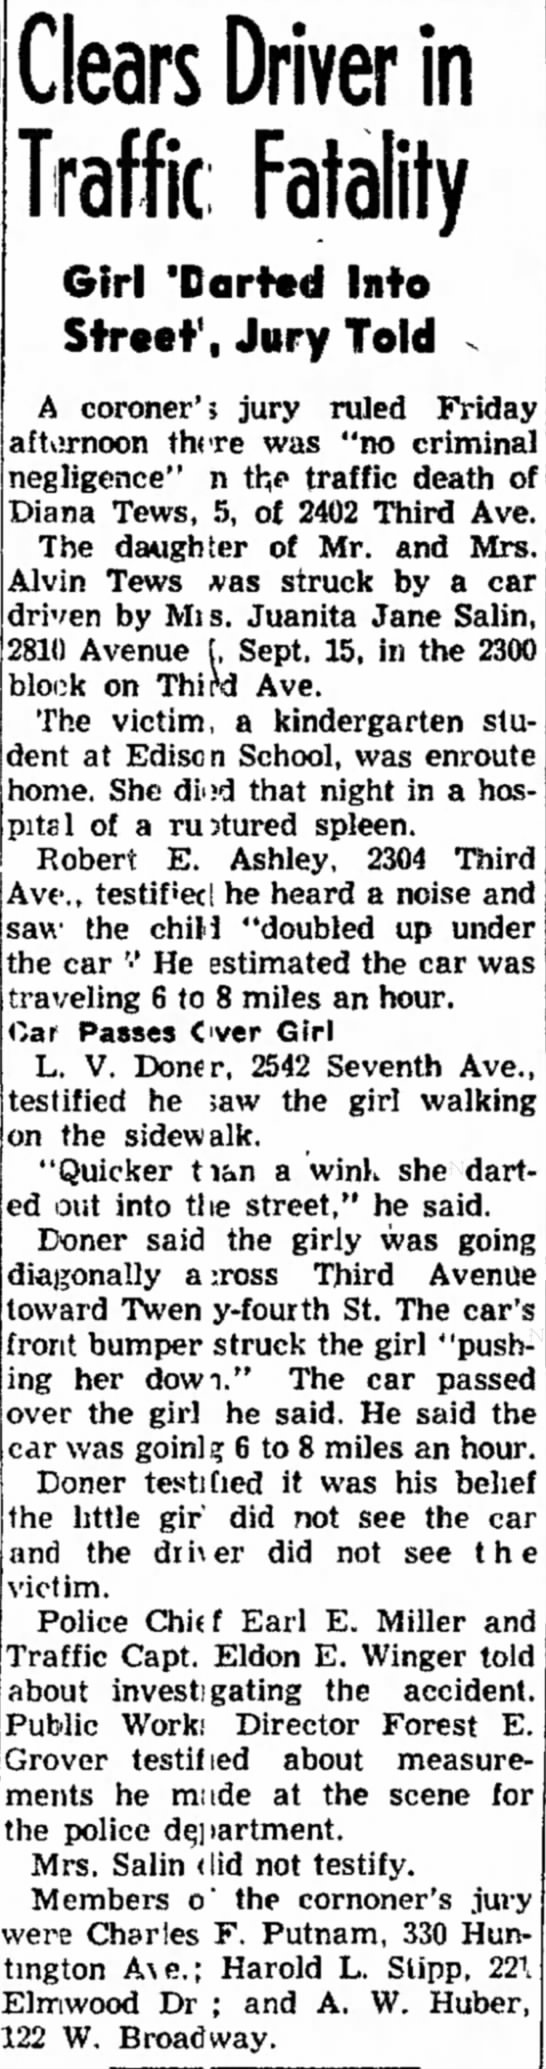 Clears Driver in Traffic Fatality - Council Bluffs Nonpareil - 26 Sep 1953, page 16